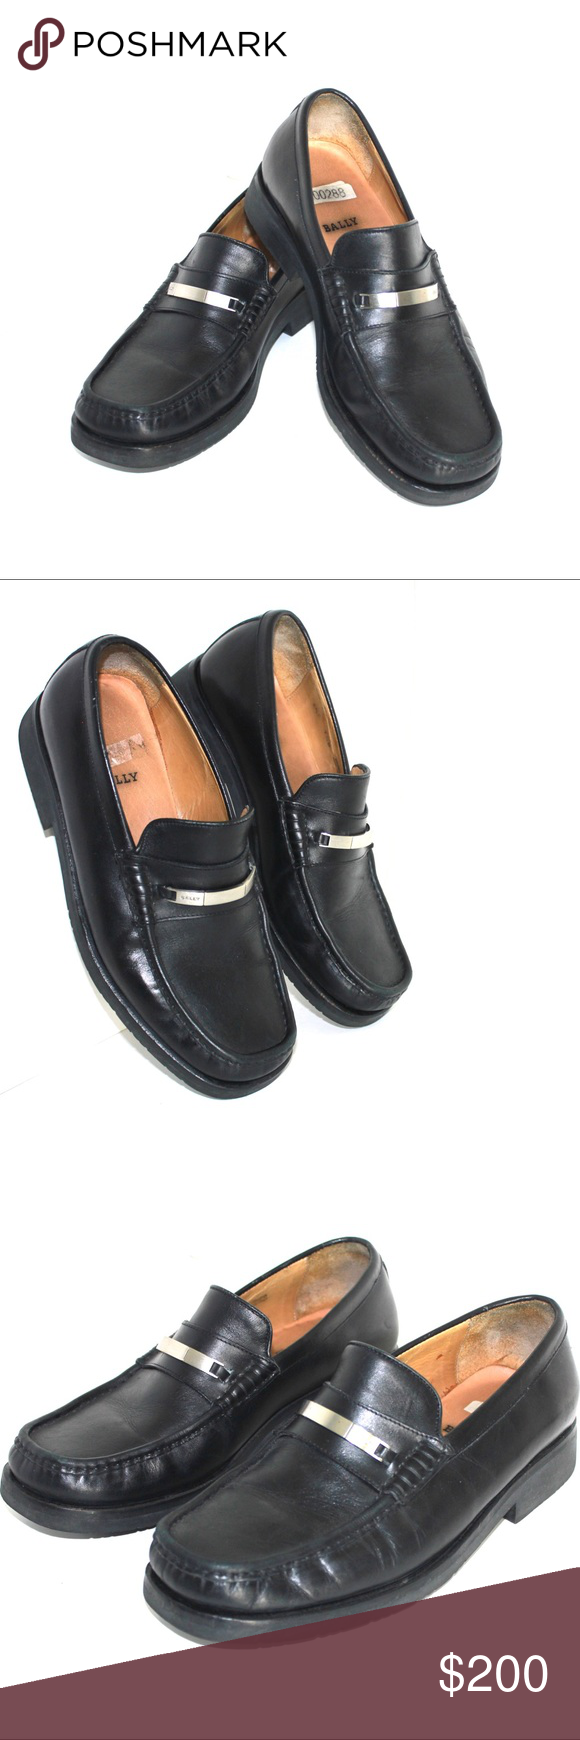 9a7b434070c30 Bally Vintage Classic Menswear Signature Loafers Quality and classic.  Silver tone signature metal detail.